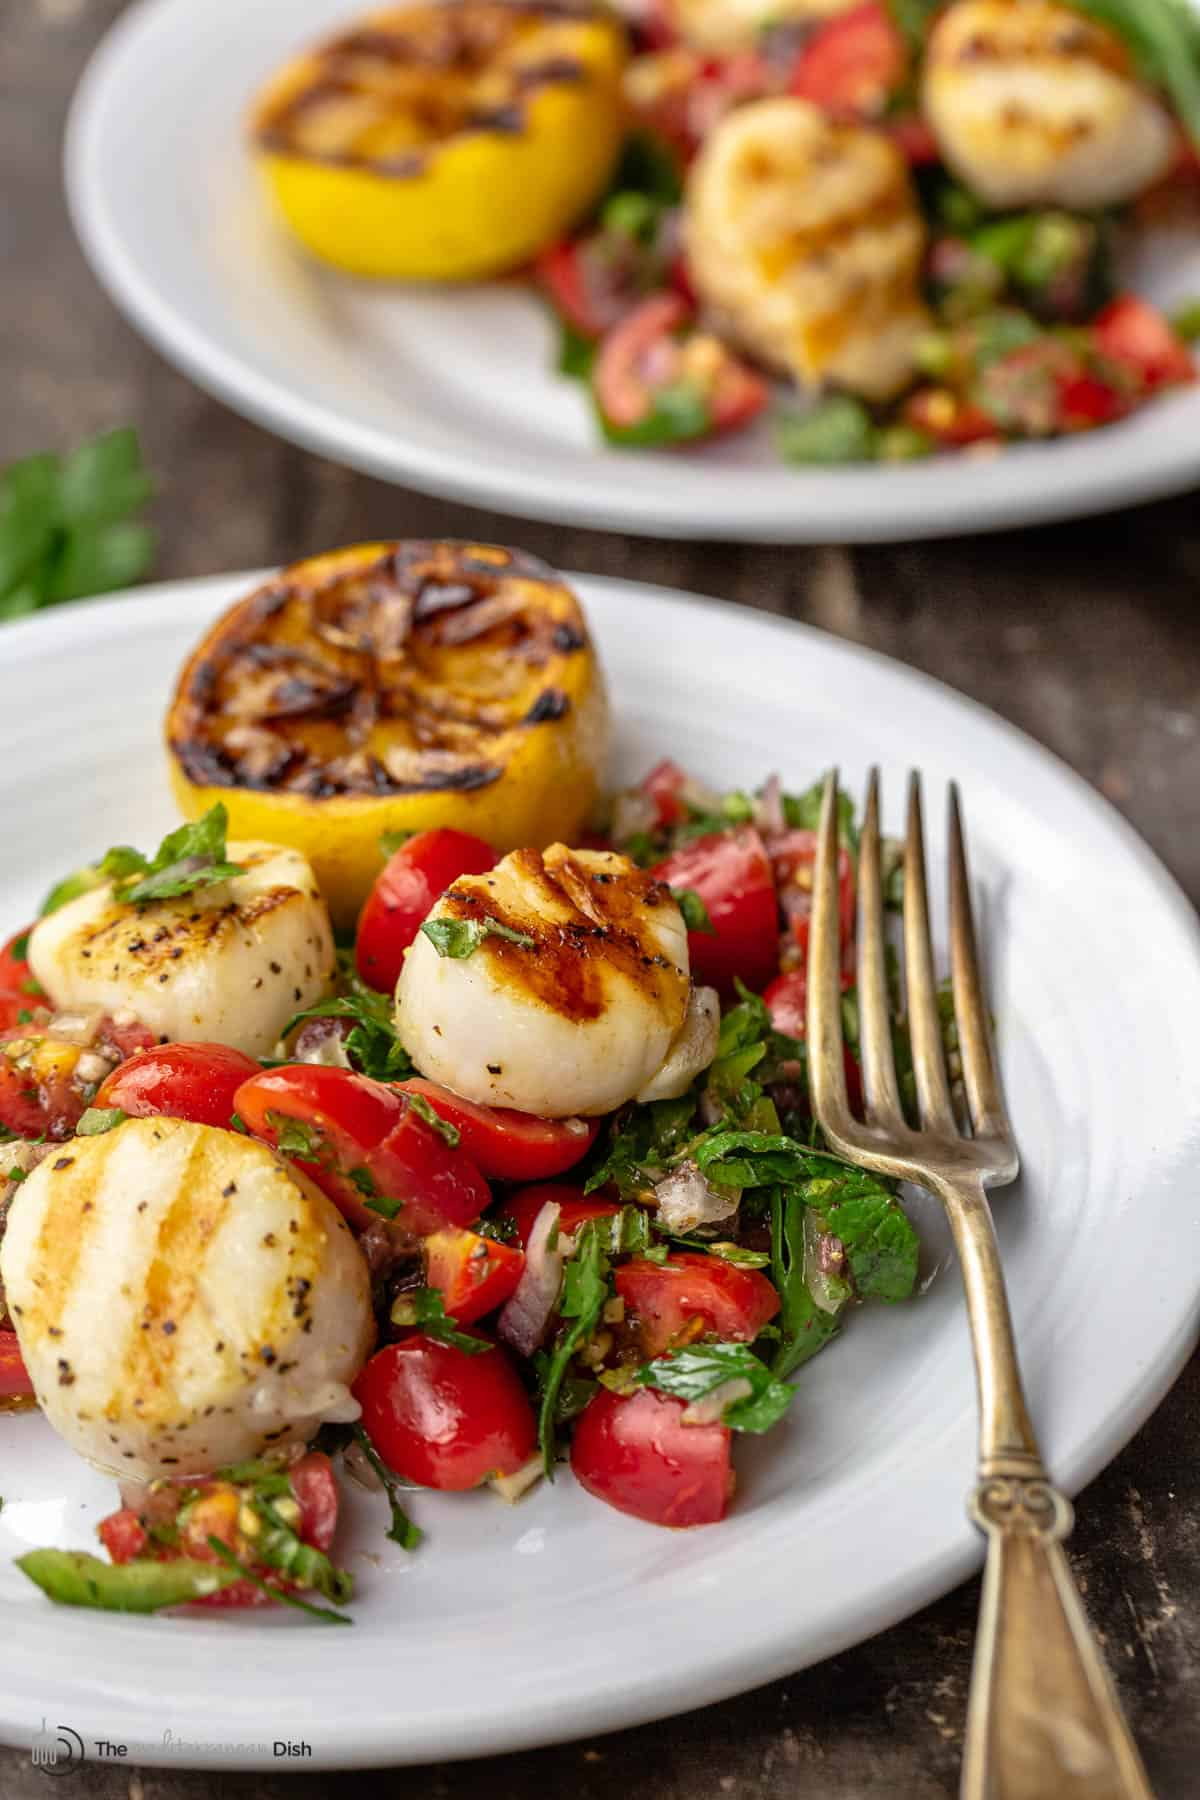 A plate of scallops over Mediterranean-style salsa